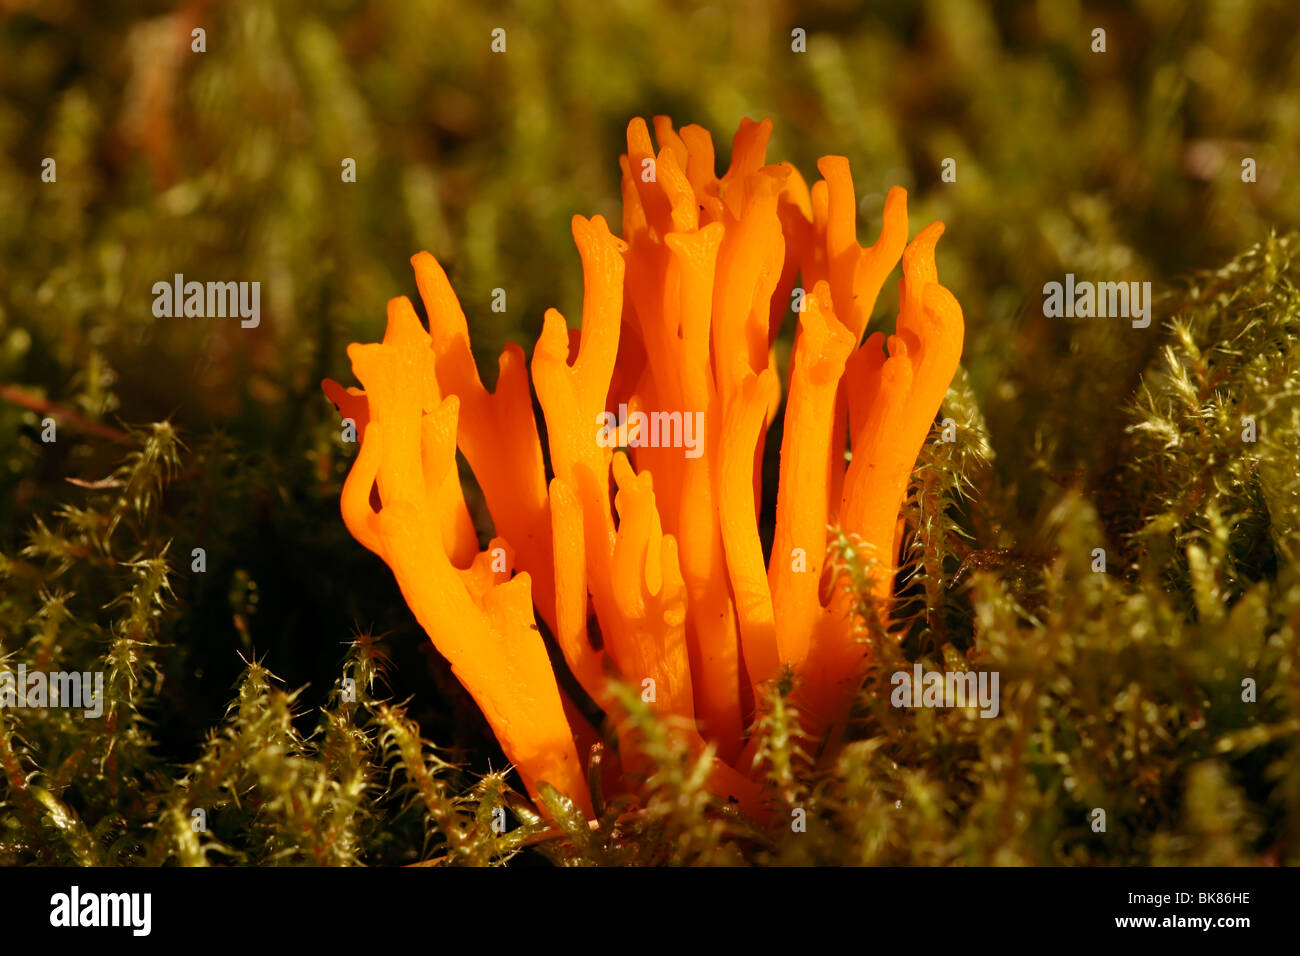 Yellow tuning fork or Yellow stagshorn fungus (Calocera viscosa) - Stock Image